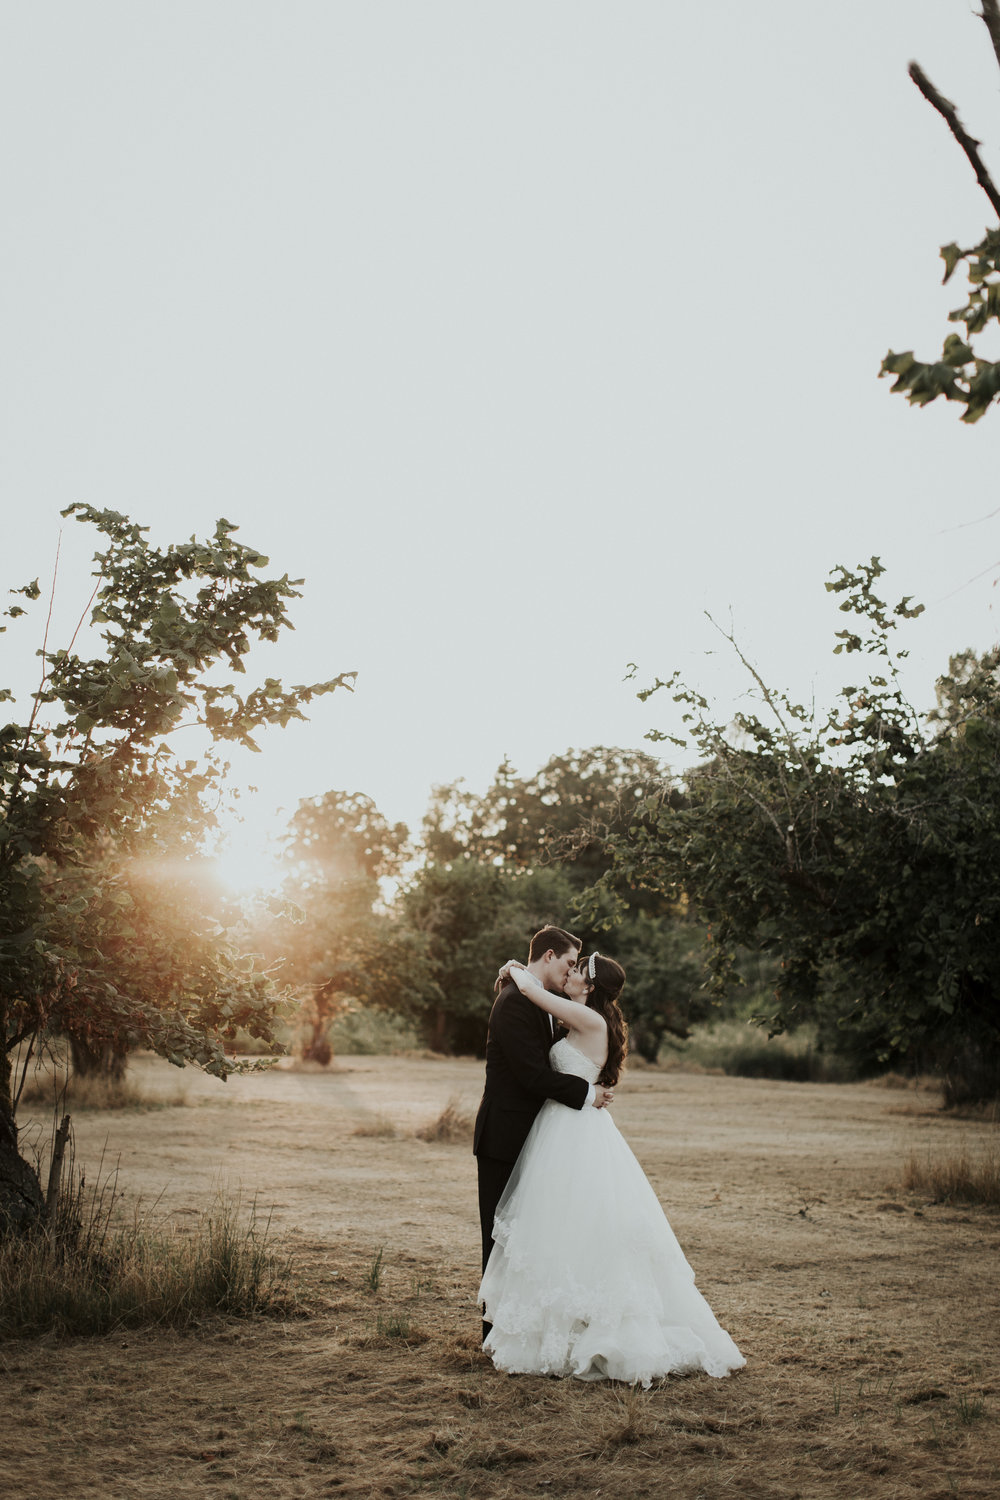 Fairytale sunset wedding